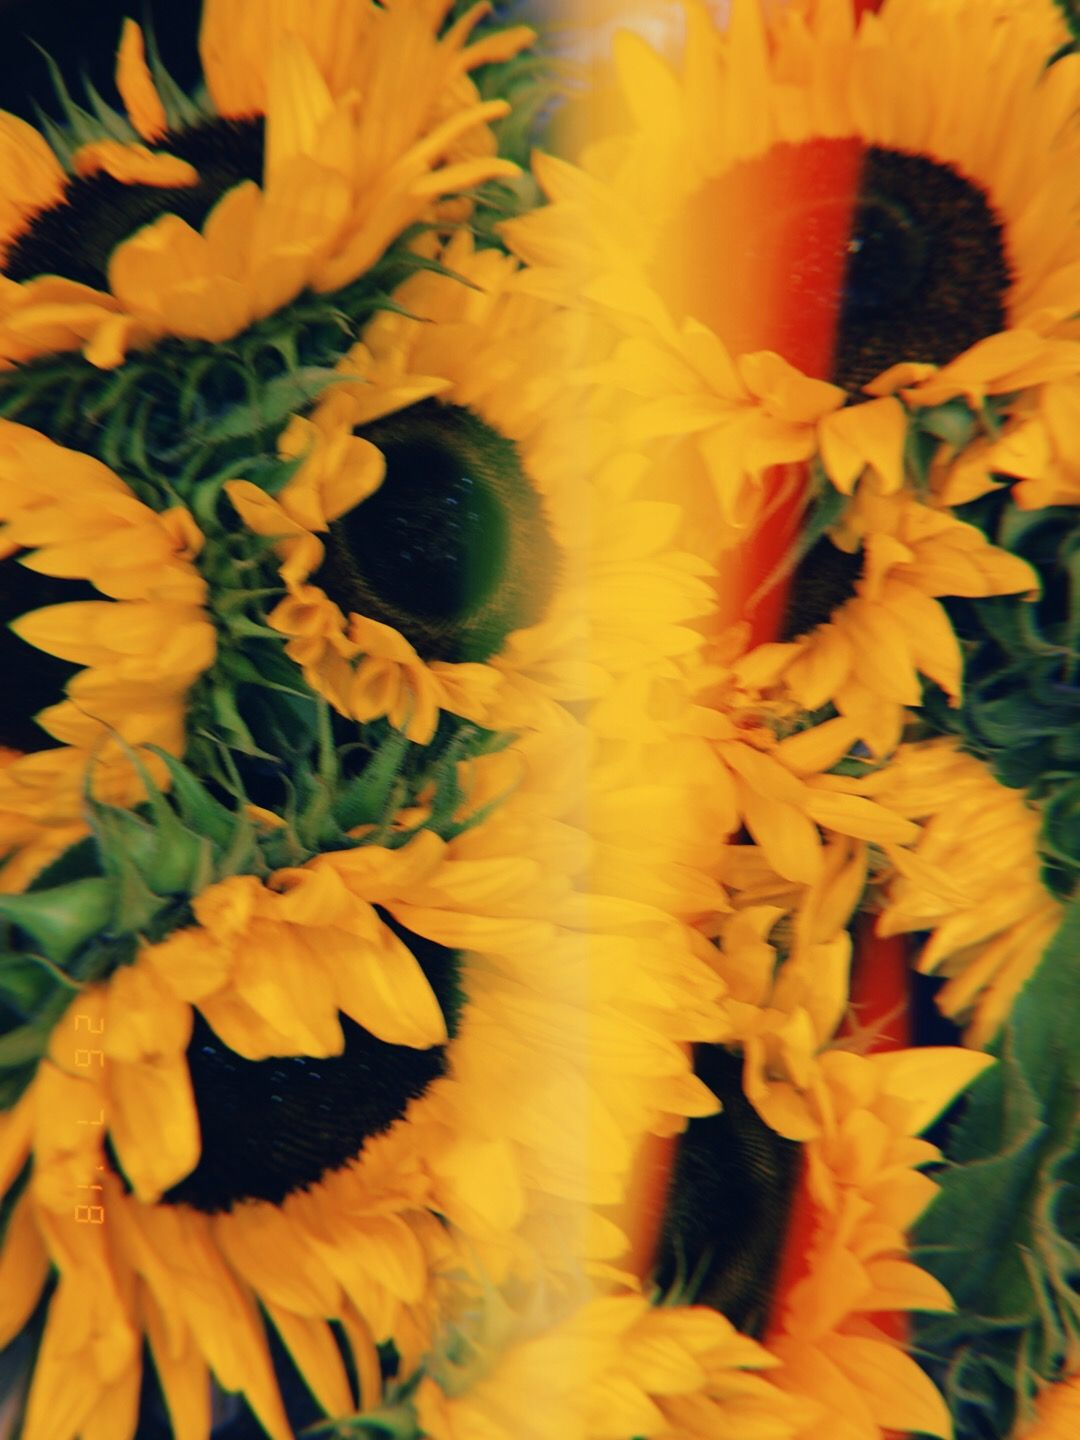 Yellow Aesthetic Image By Dayday On Pulls Out Camera